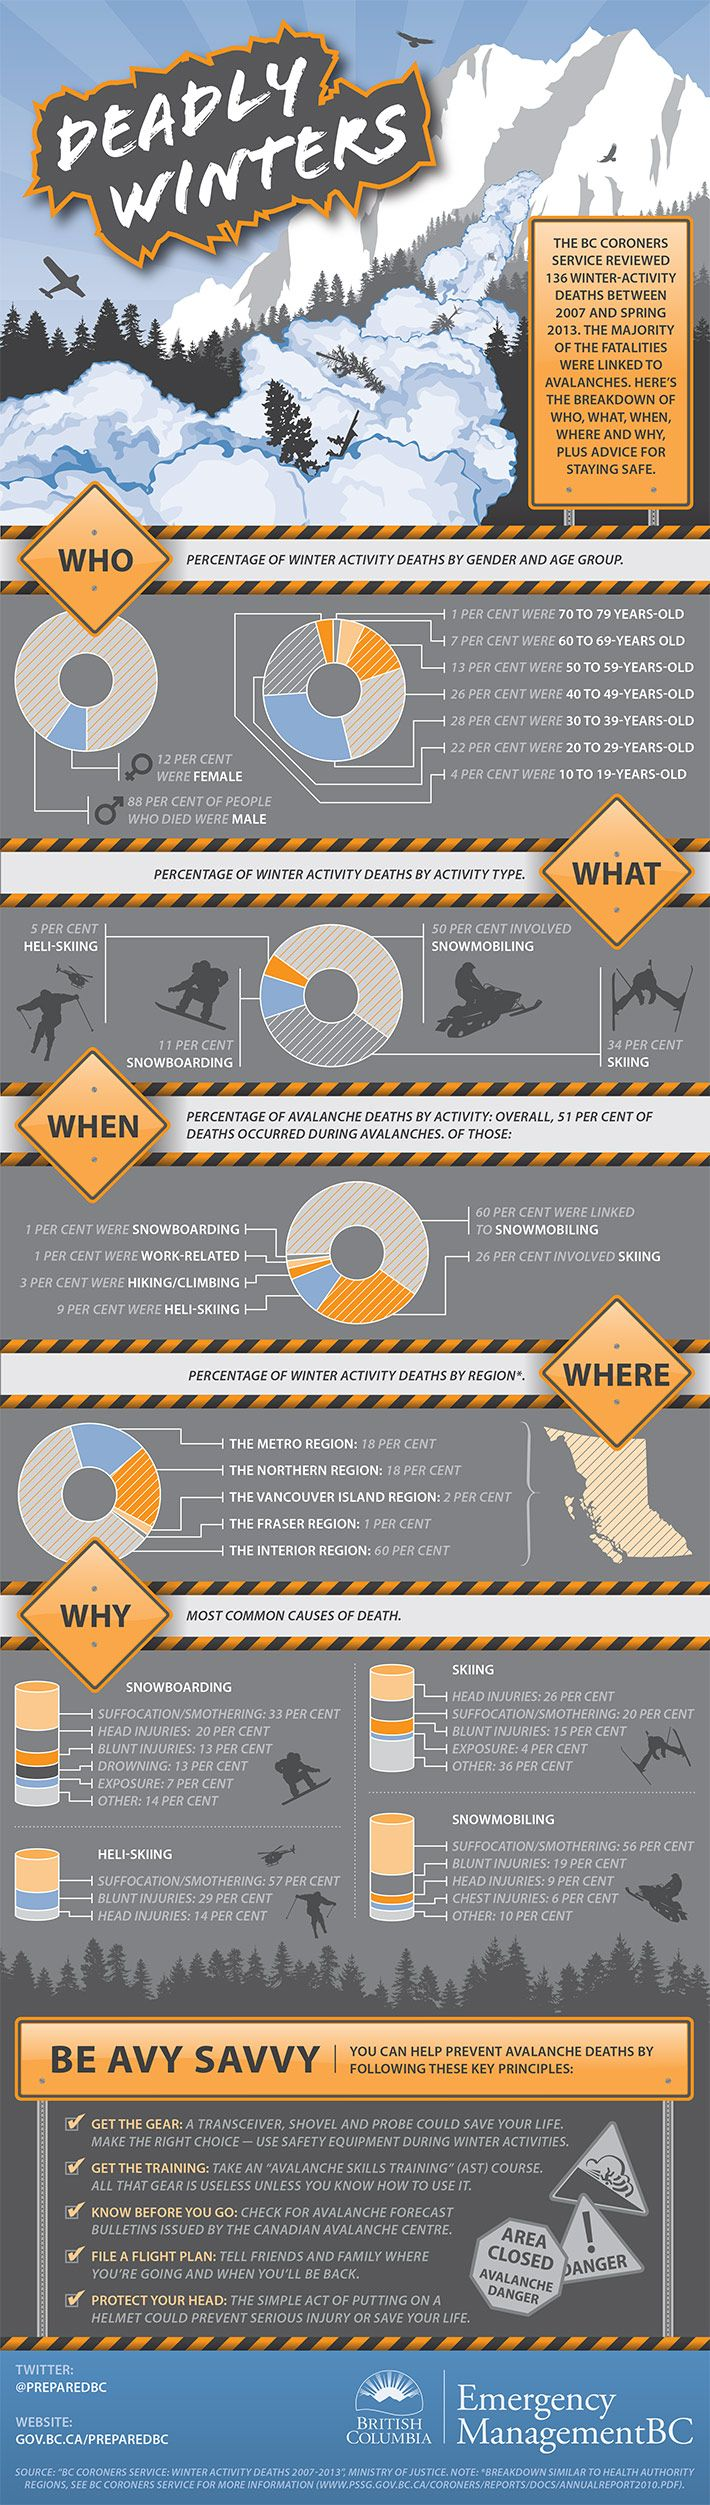 Chasing the backcountry does carry risk. This infographic depicts winter activity deaths between 2007 and 2013 in B.C. Learn as much as possible about backcountry safety.